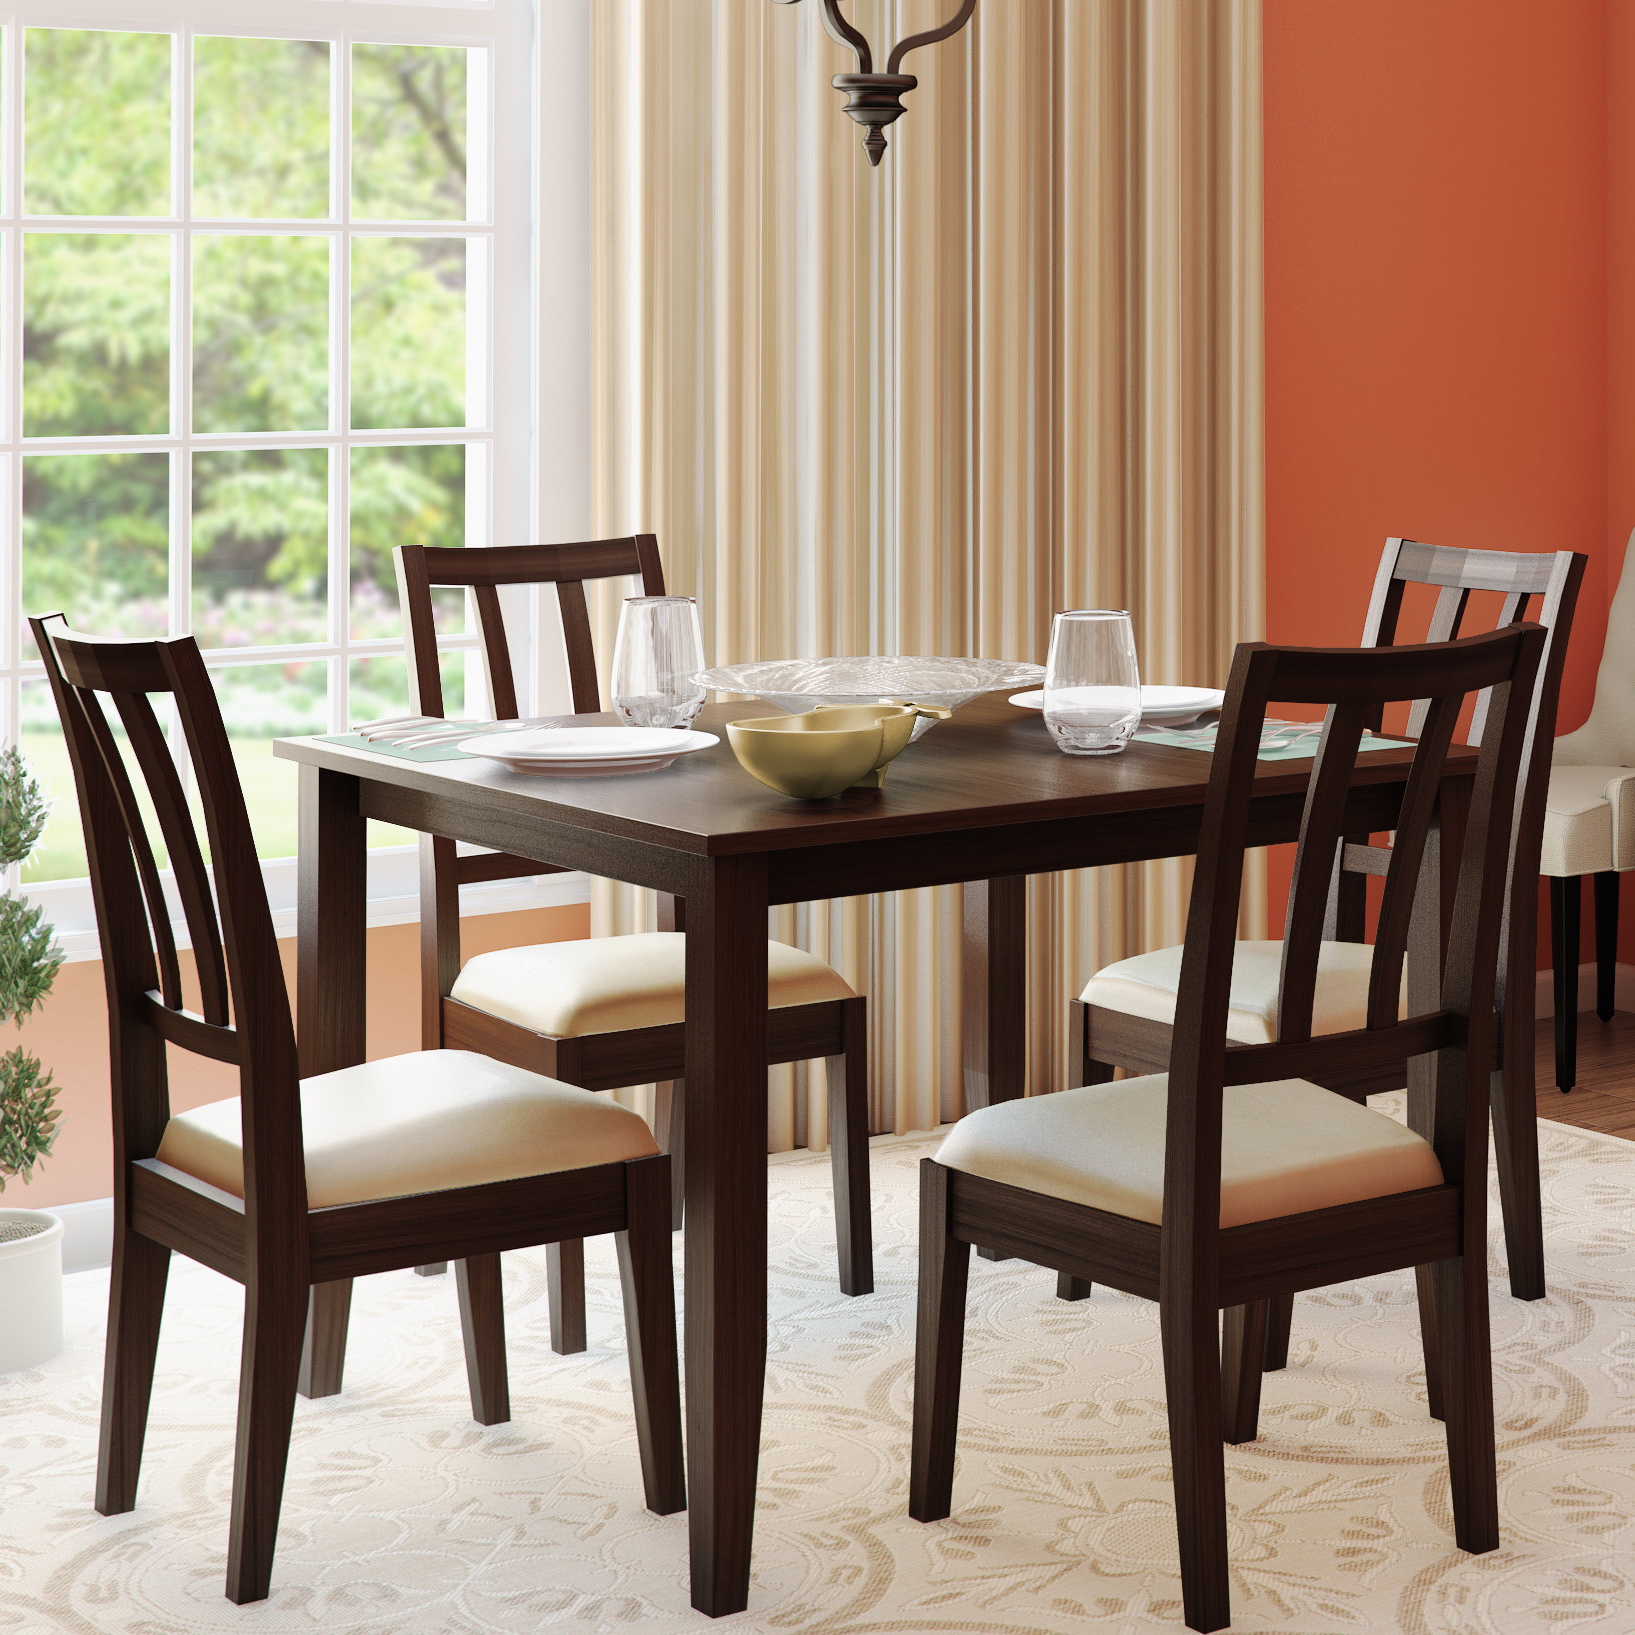 Wayfair Inside Rarick 5 Piece Solid Wood Dining Sets (Set Of 5) (View 18 of 20)